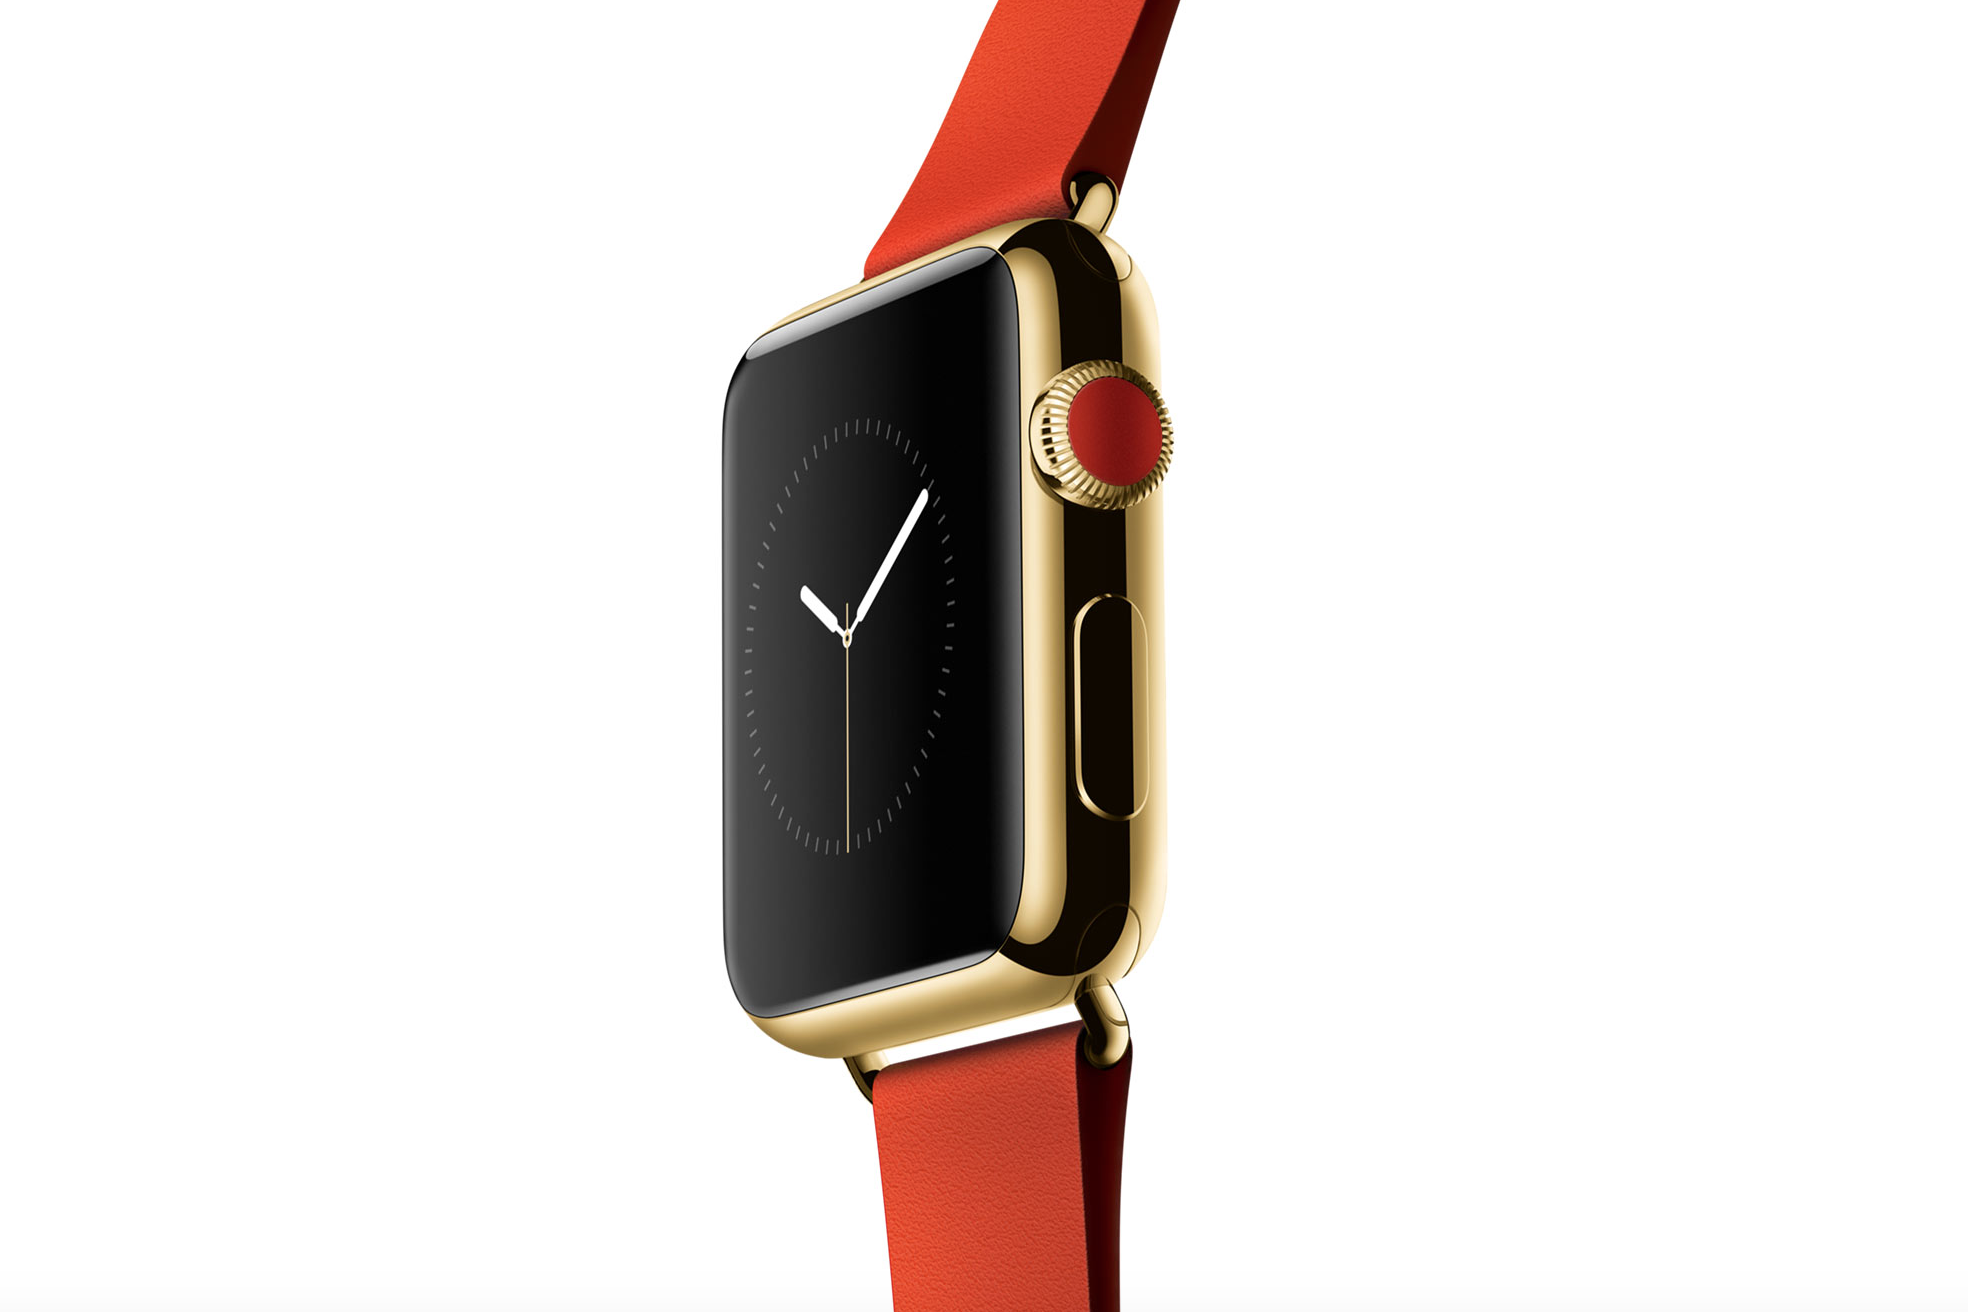 apple watch d'oro